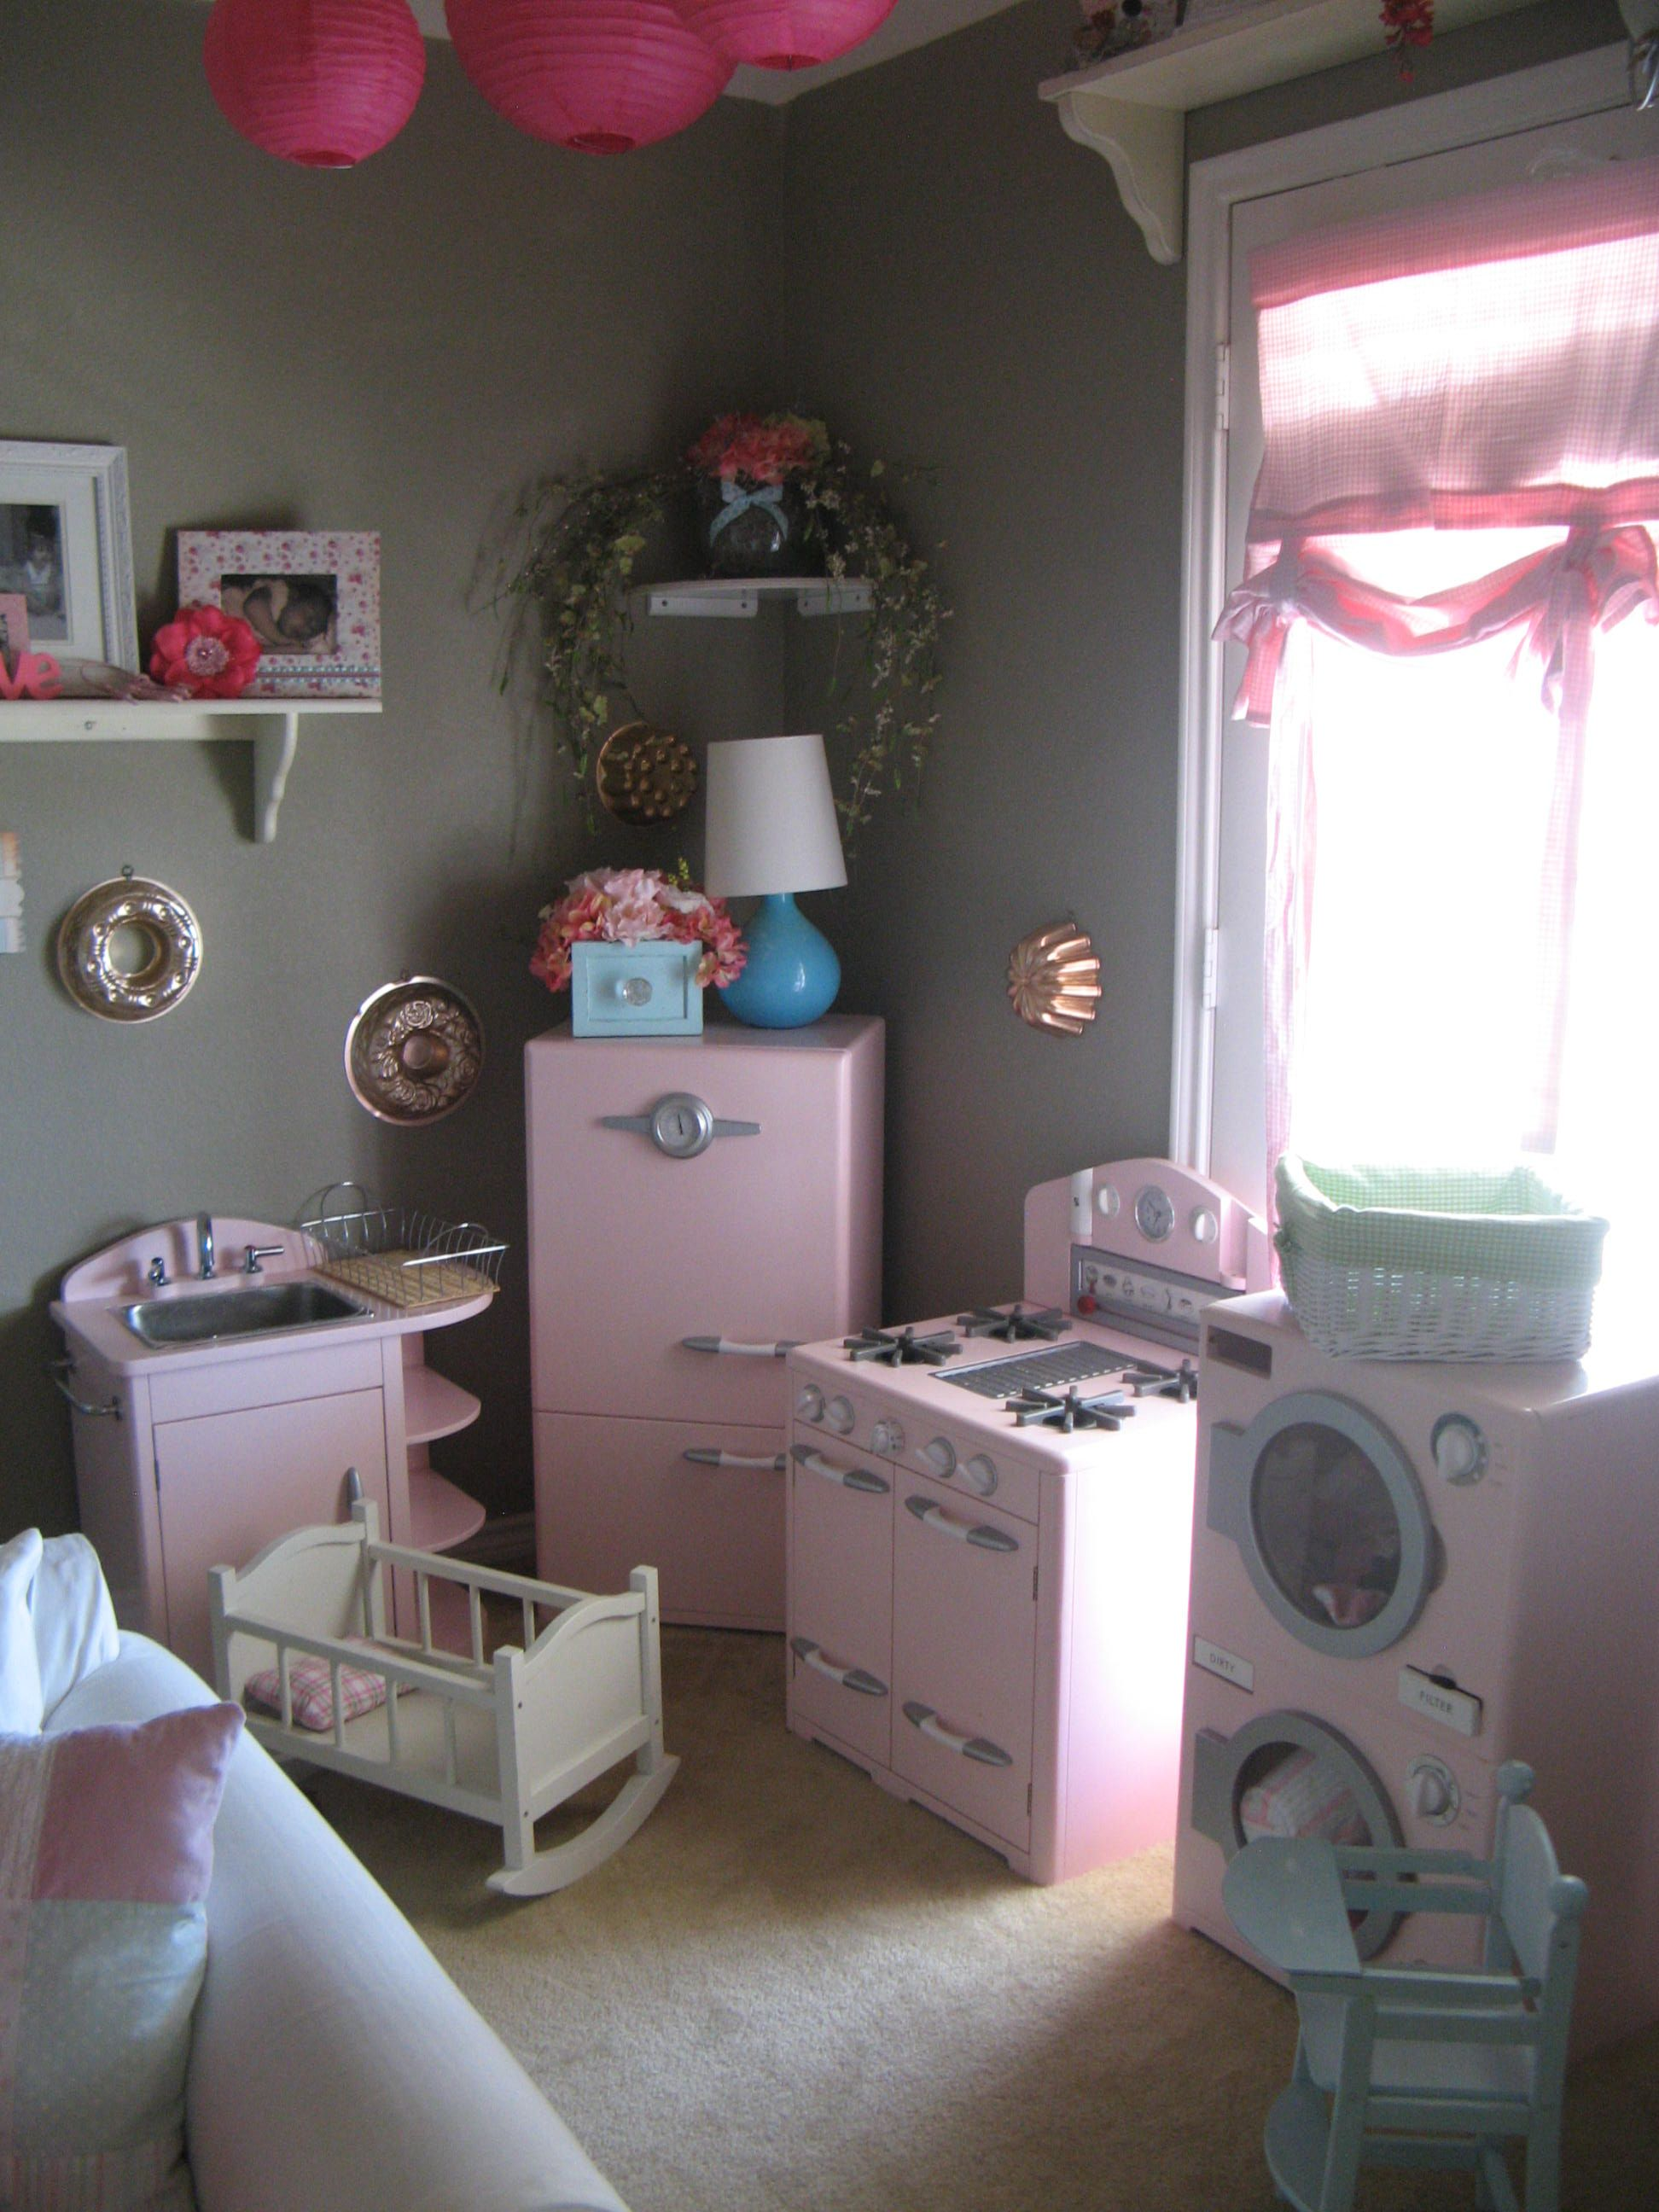 pottery barn kitchens cork kitchen flooring pretend play area kids pink retro